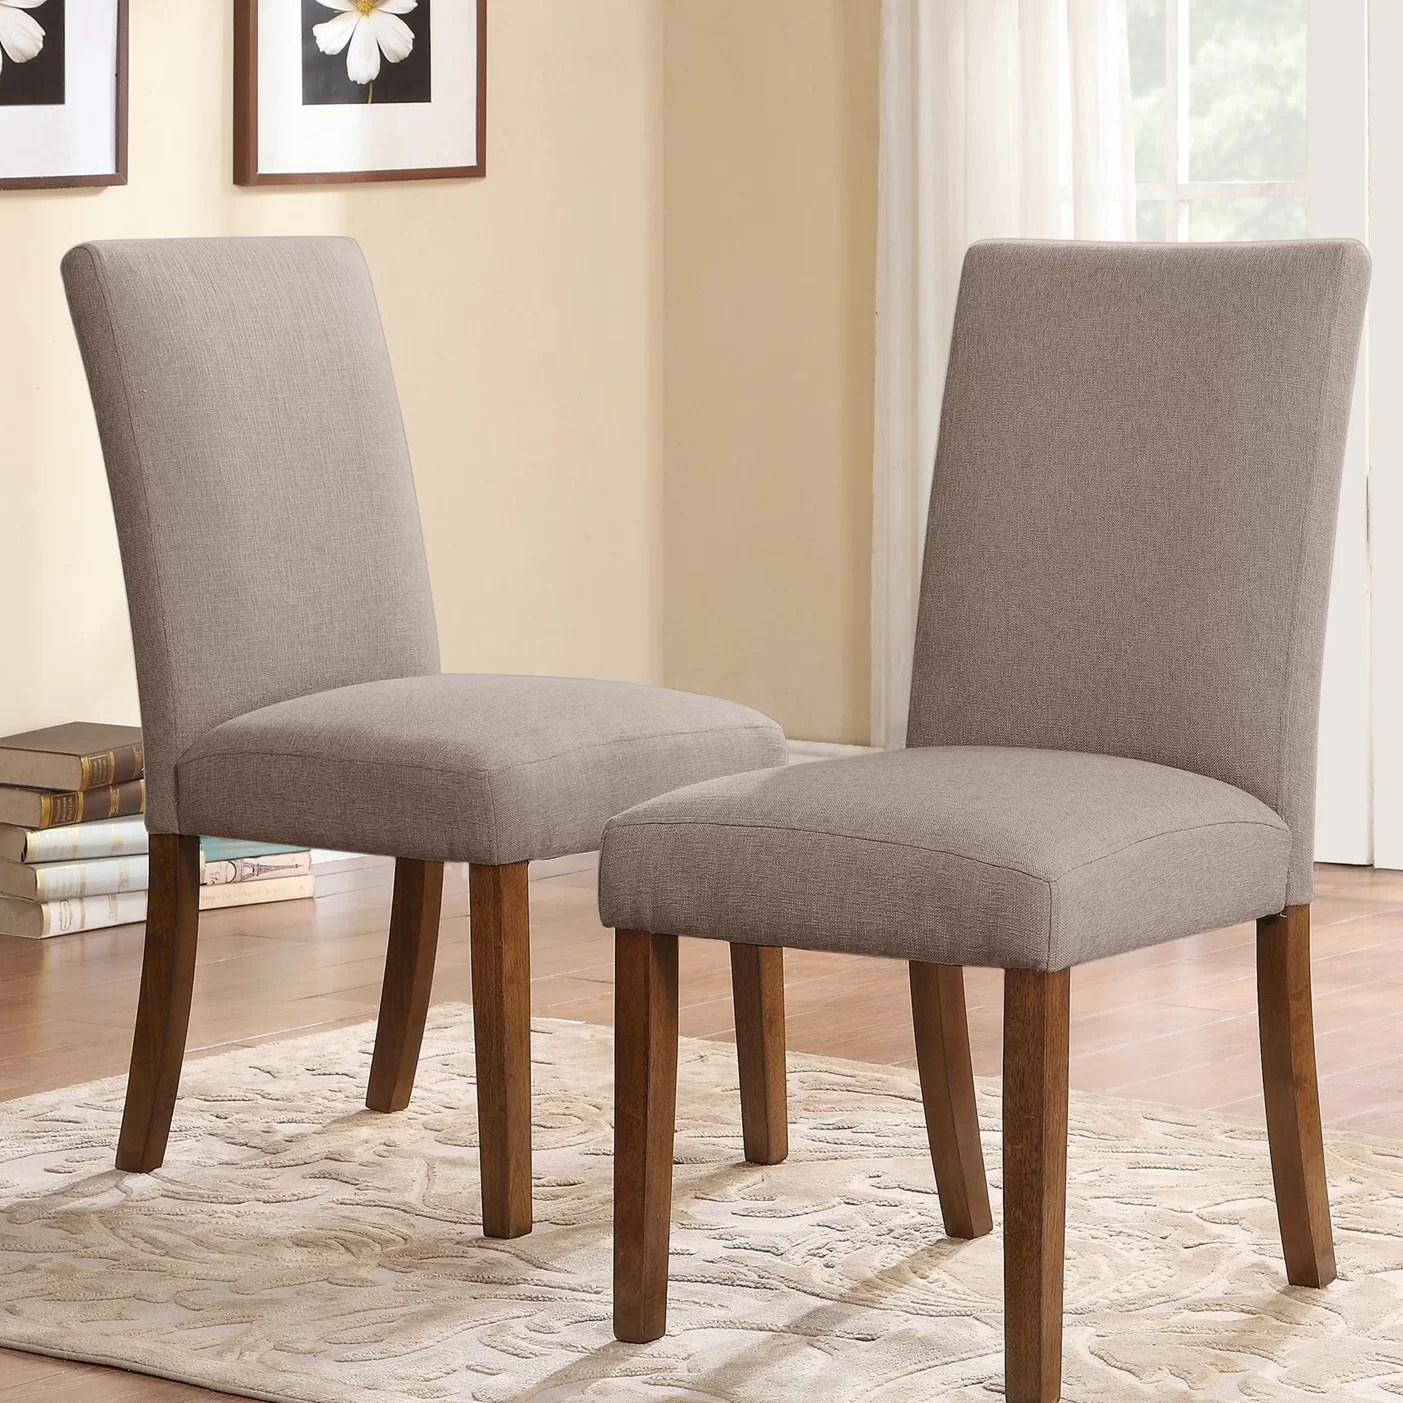 Wayfair Dining Chairs Dorel Living Parsons Chair And Reviews Wayfair